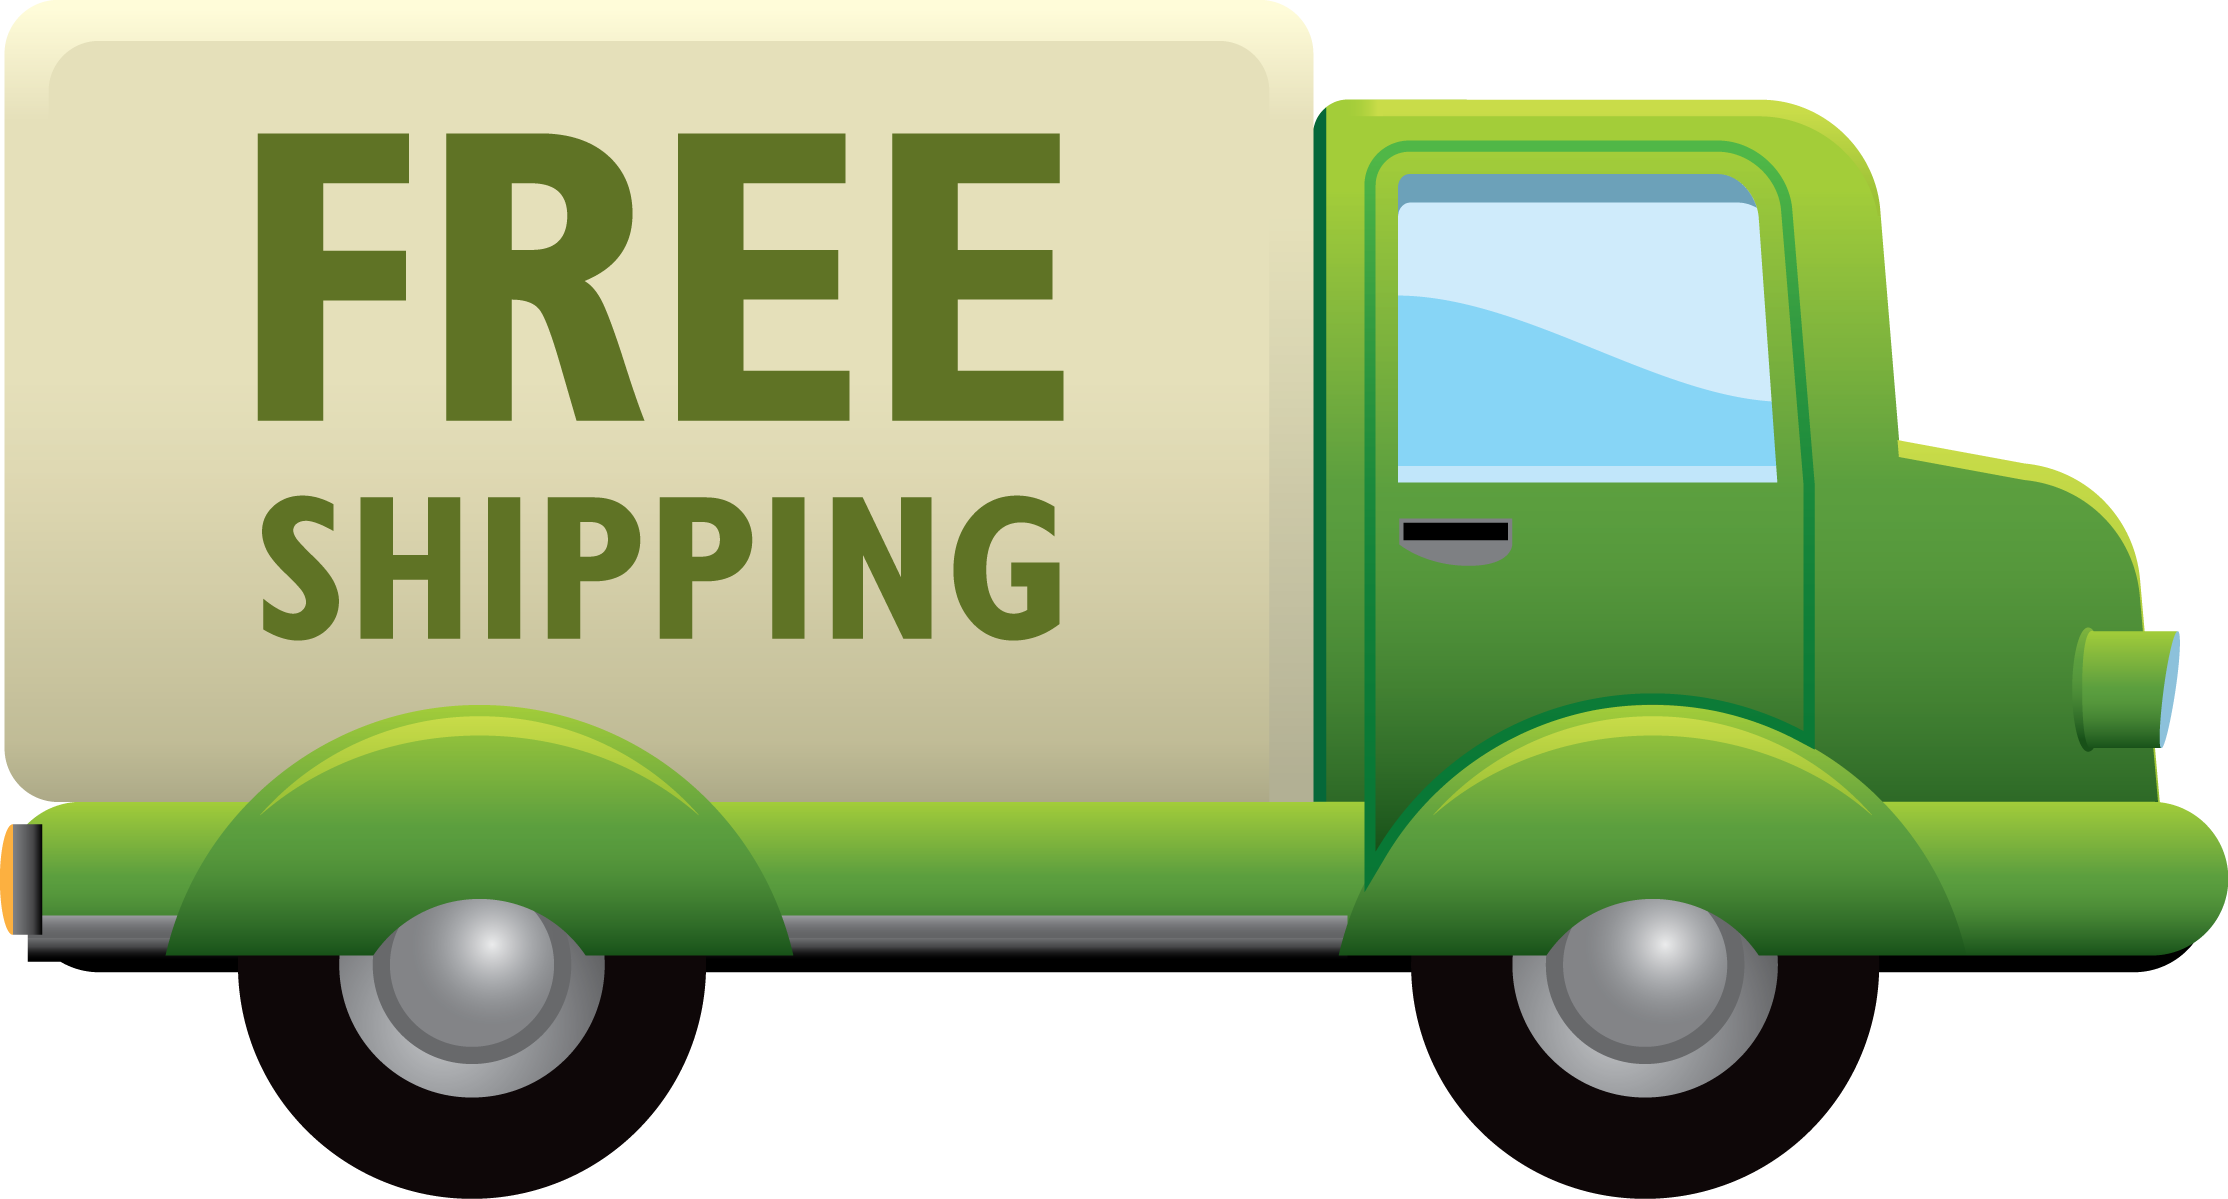 free_shipping_truck